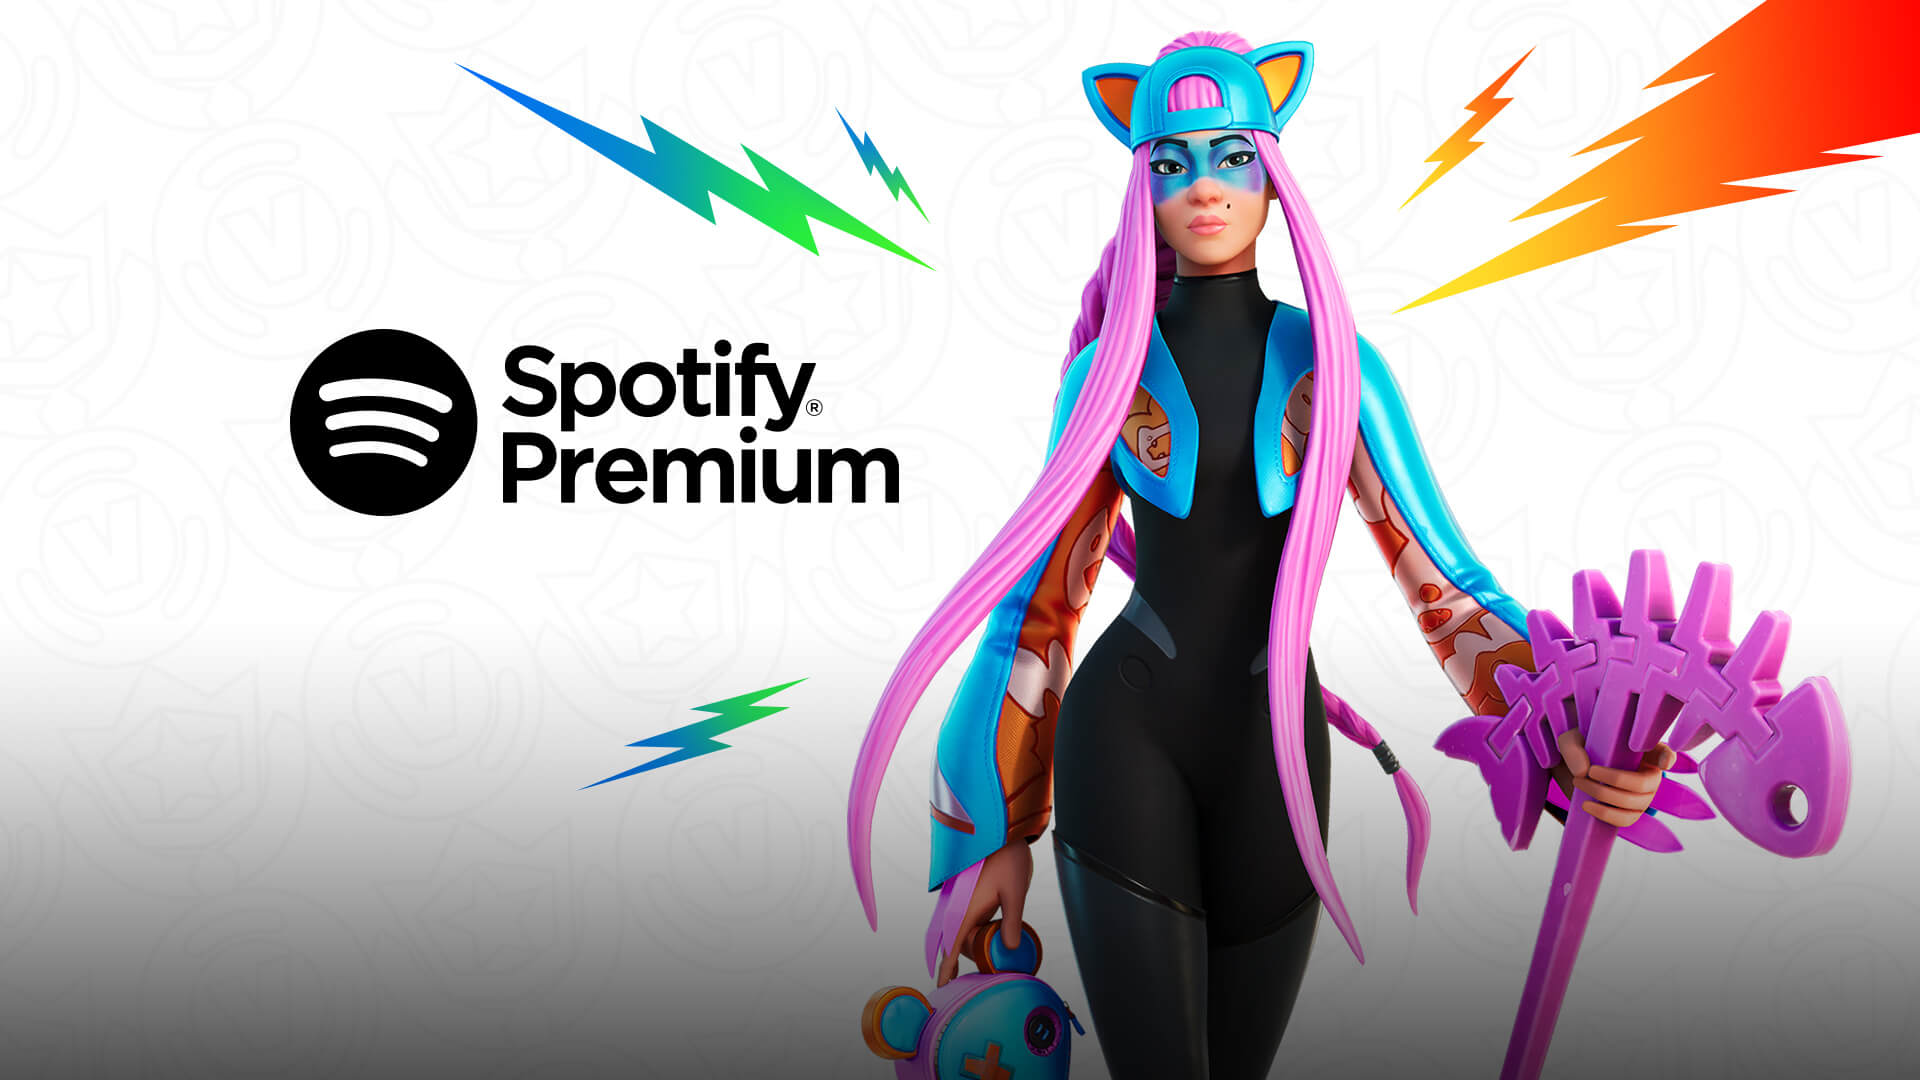 Get 3 Months Of Spotify Premium From The Fortnite Crew!